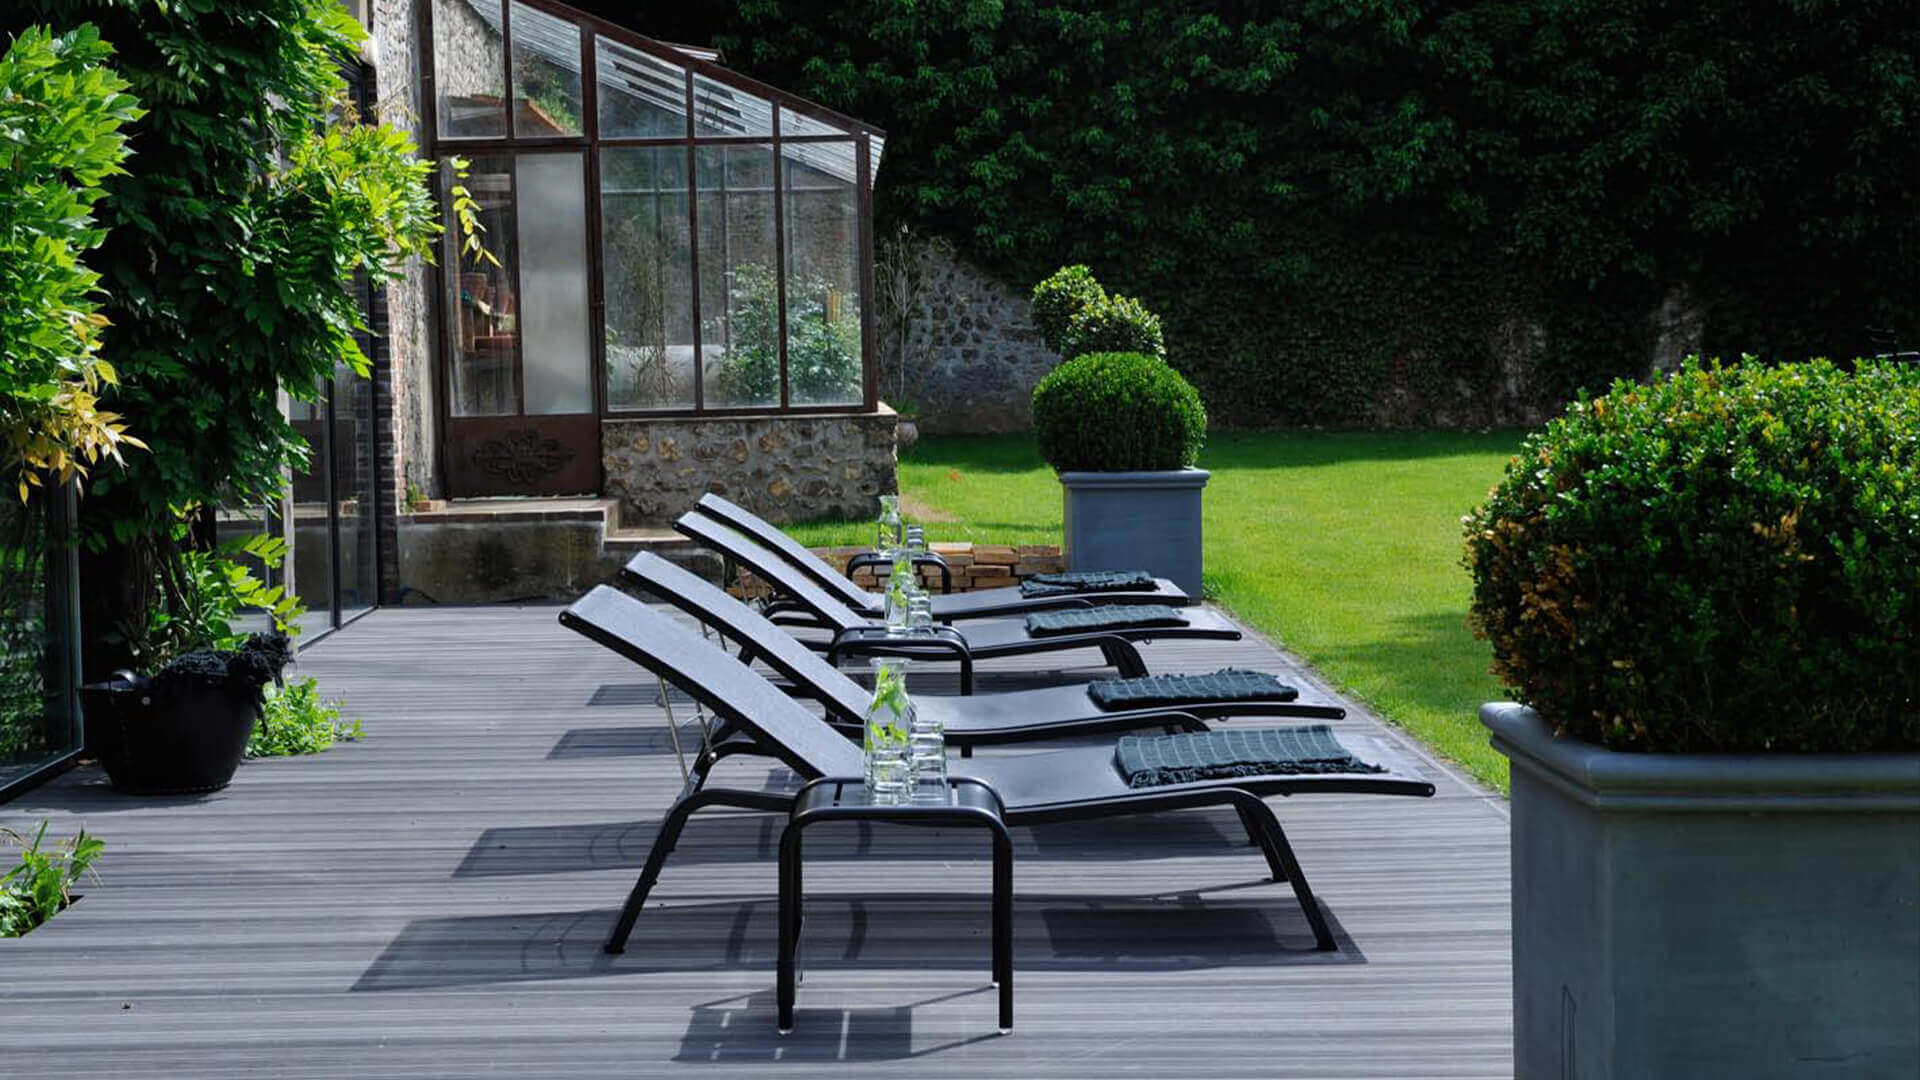 Chateau Perche loungers on a dark wooden patio with greenhouse in the back